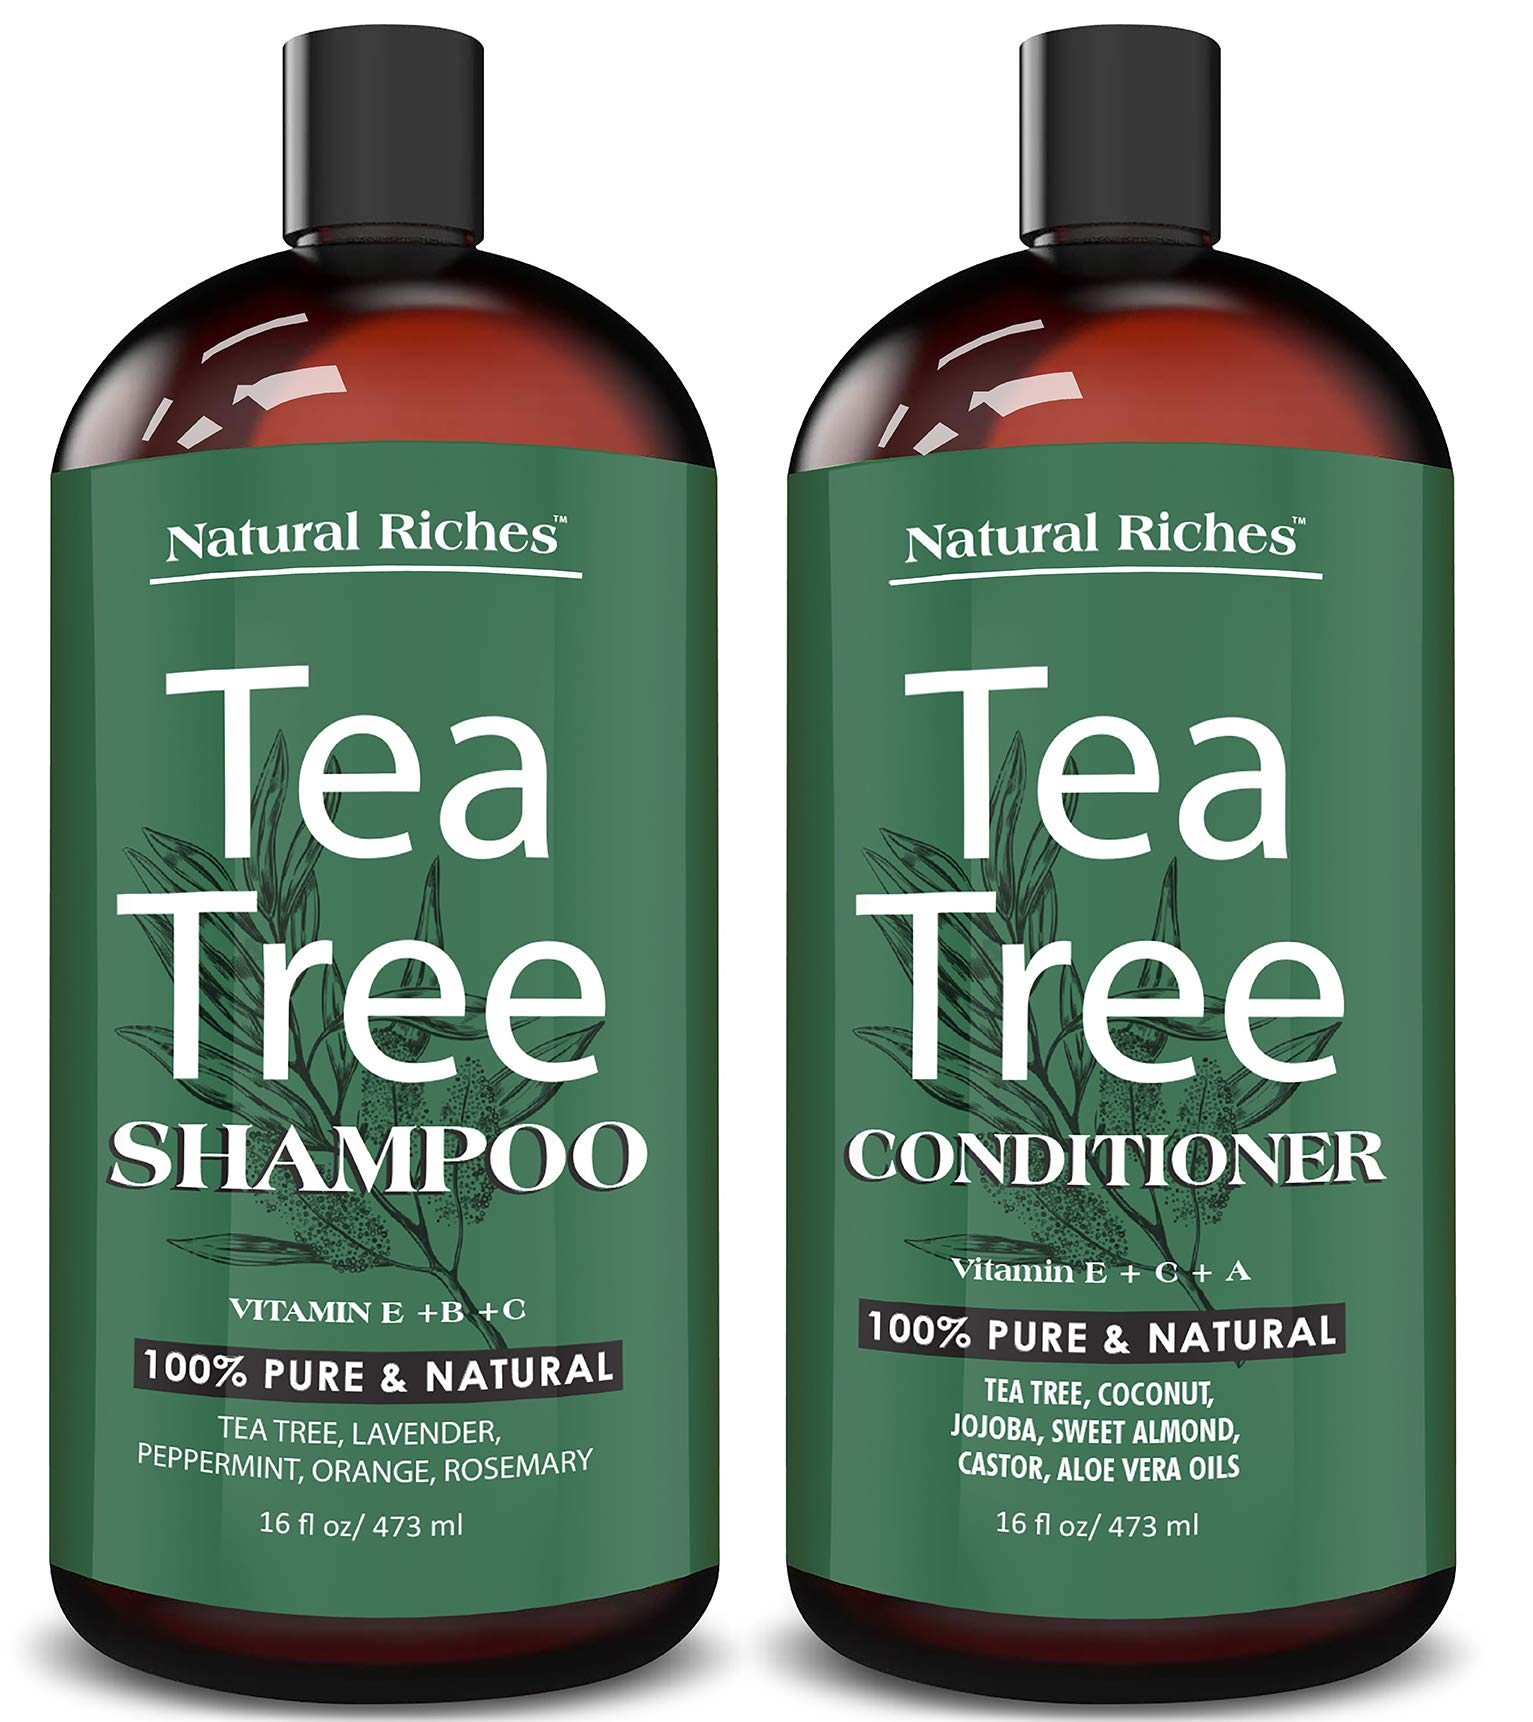 Natural Riches Tea Tree Shampoo and Conditioner Set with 100% Pure Tea Tree Oil, Anti Dandruff for Itchy Dry Scalp, Sulfate Free, Paraben Free - for Men and Women - 2 bottles 16fl oz each by Natural Riches